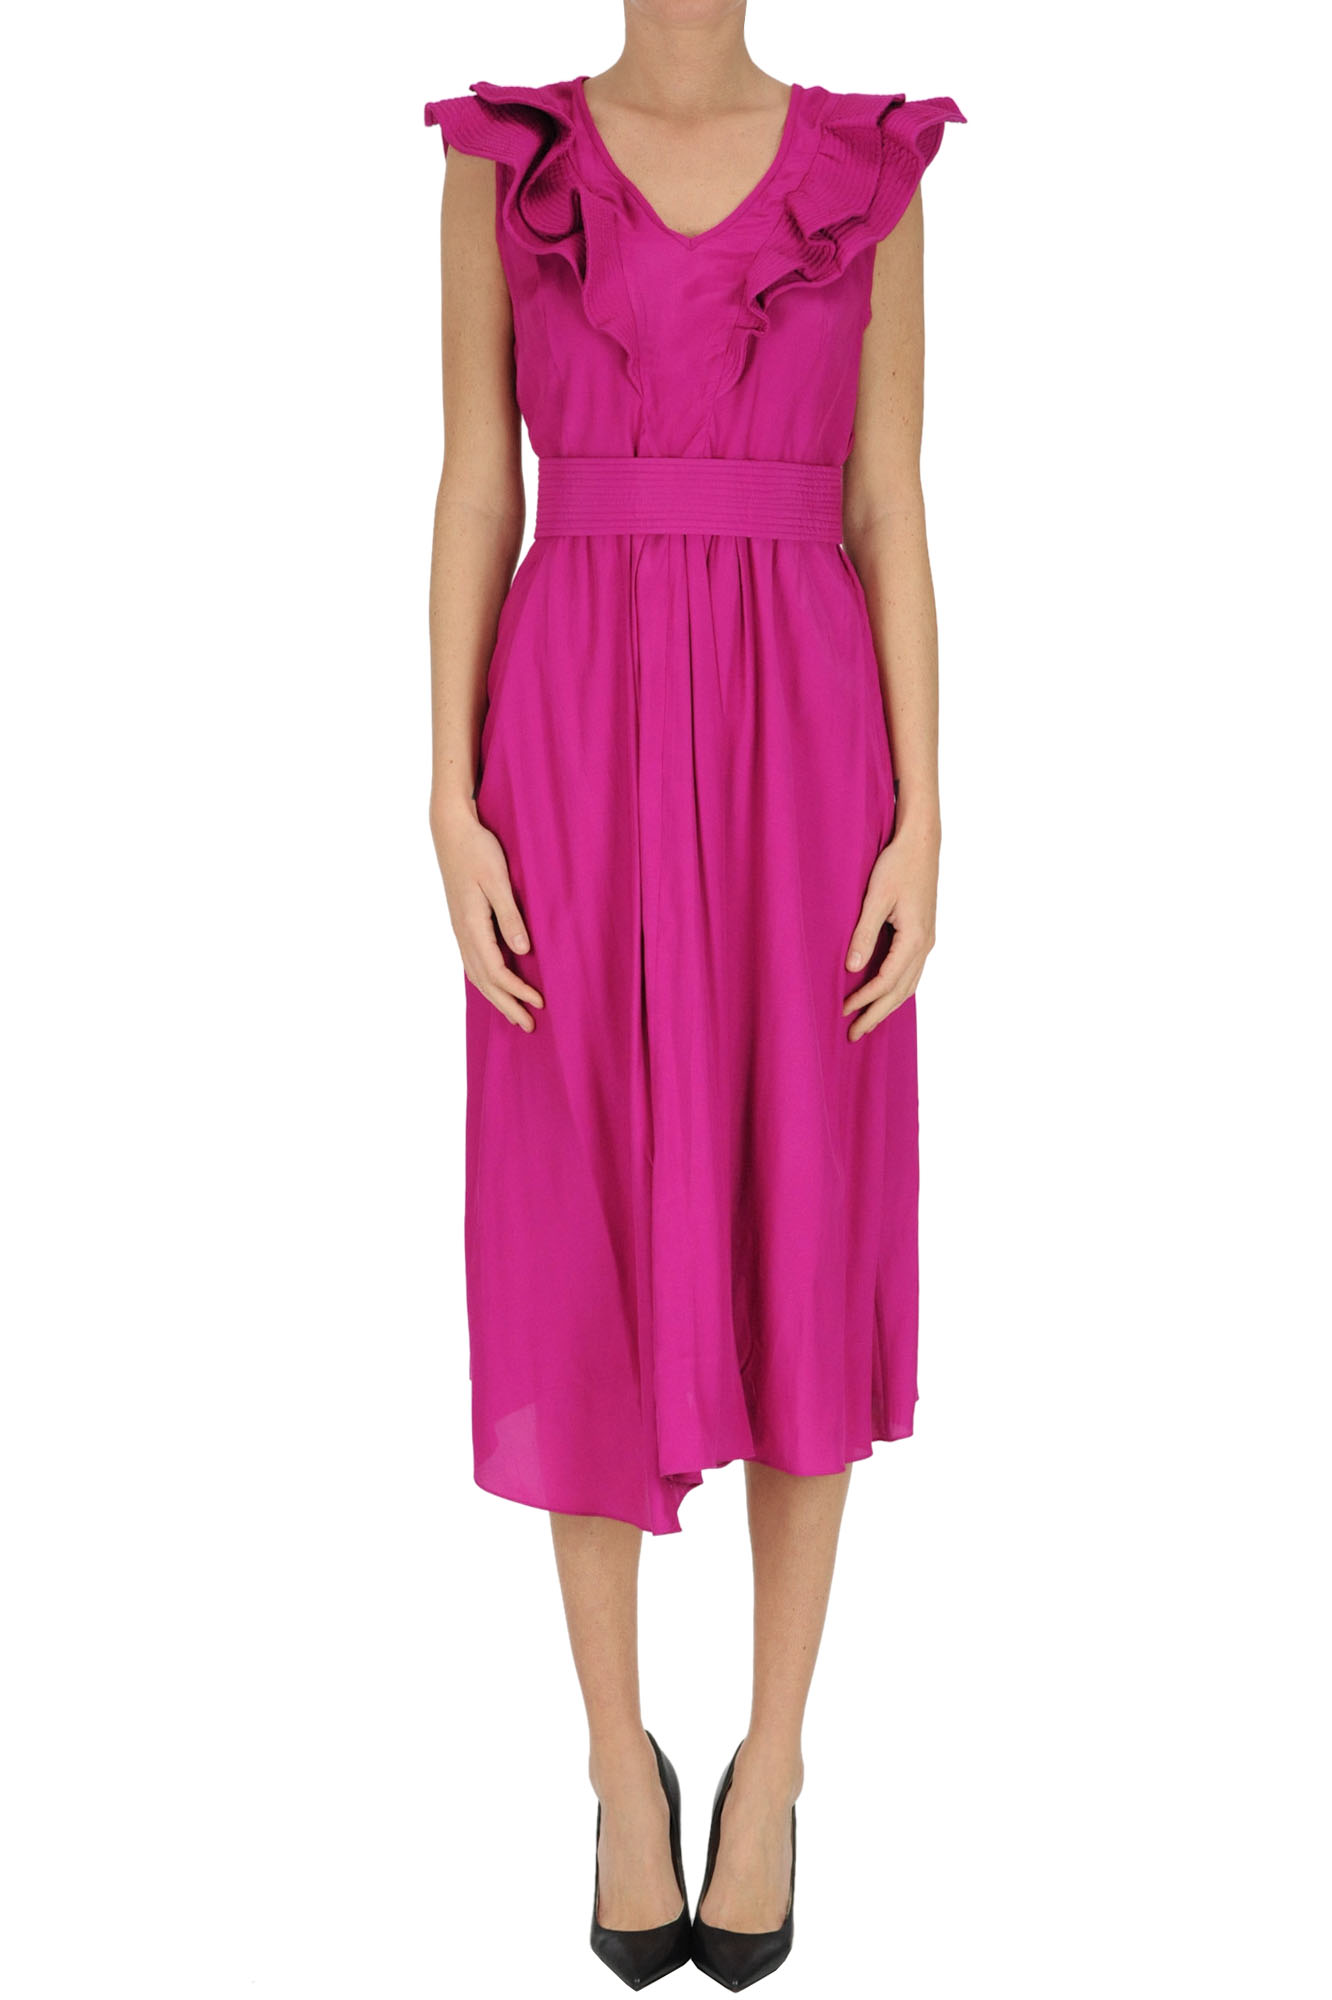 Isabel Marant Étoile Fuchsia Polyester Dress In Pink